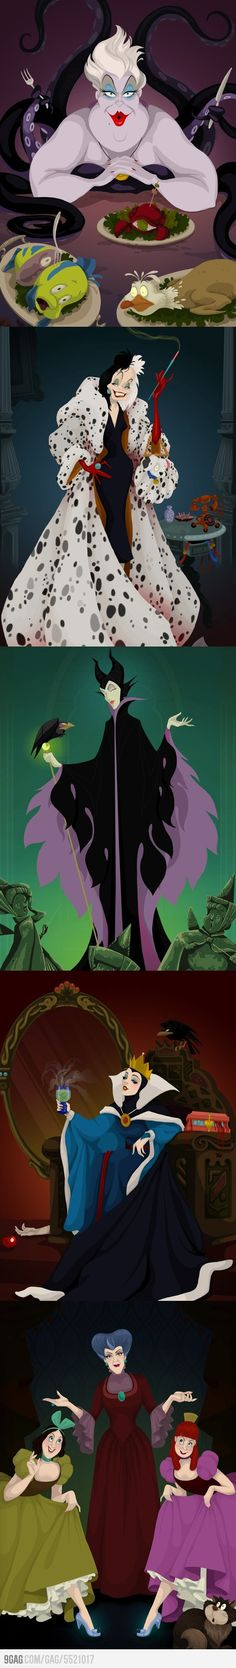 Disney Villains Happy Ending -- what the baddies dream about